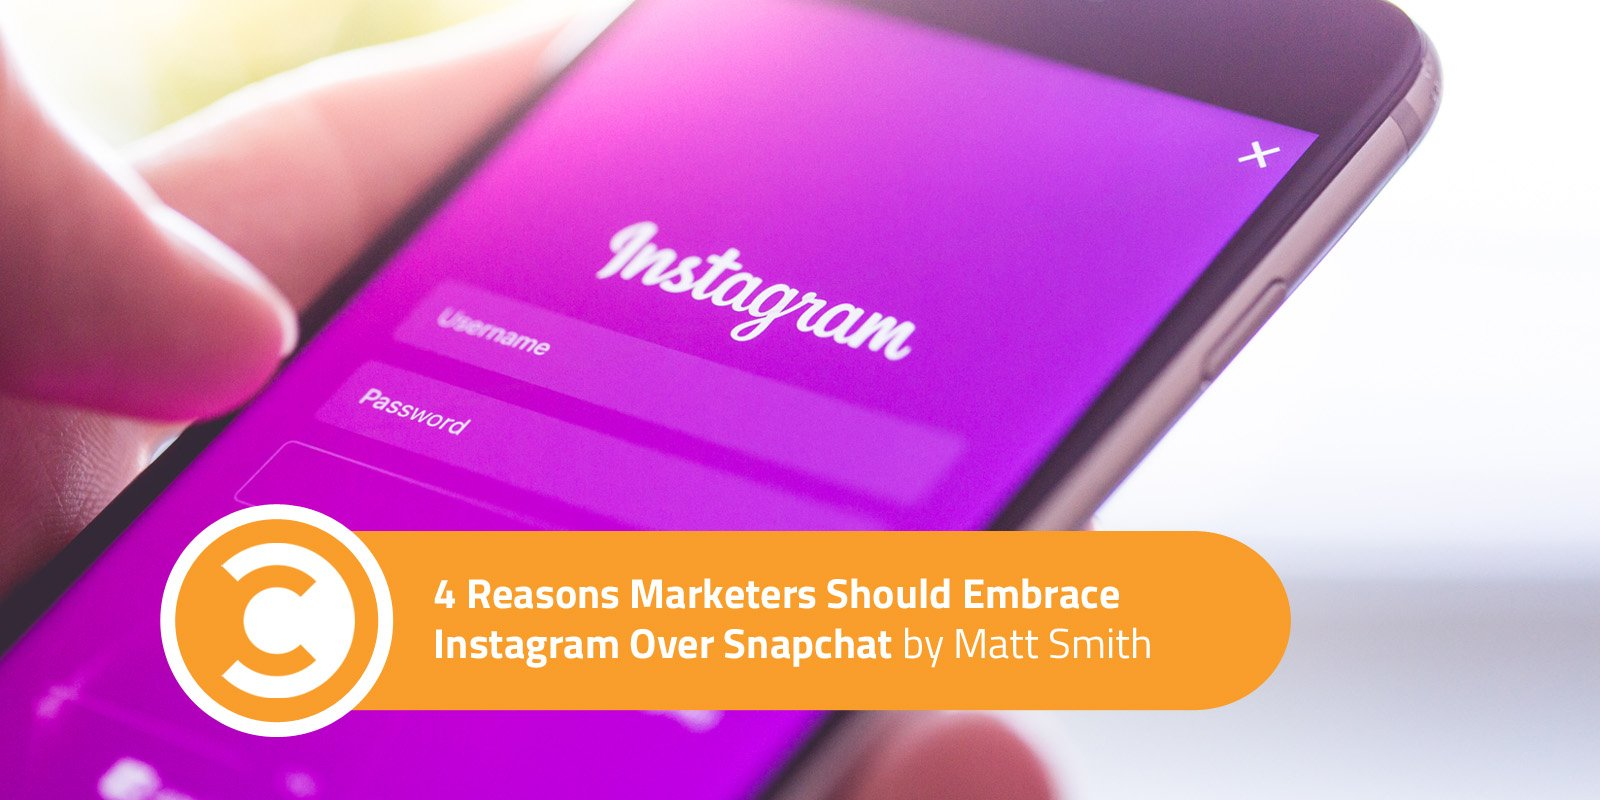 4 Reasons Marketers Should Embrace Instagram Over Snapchat